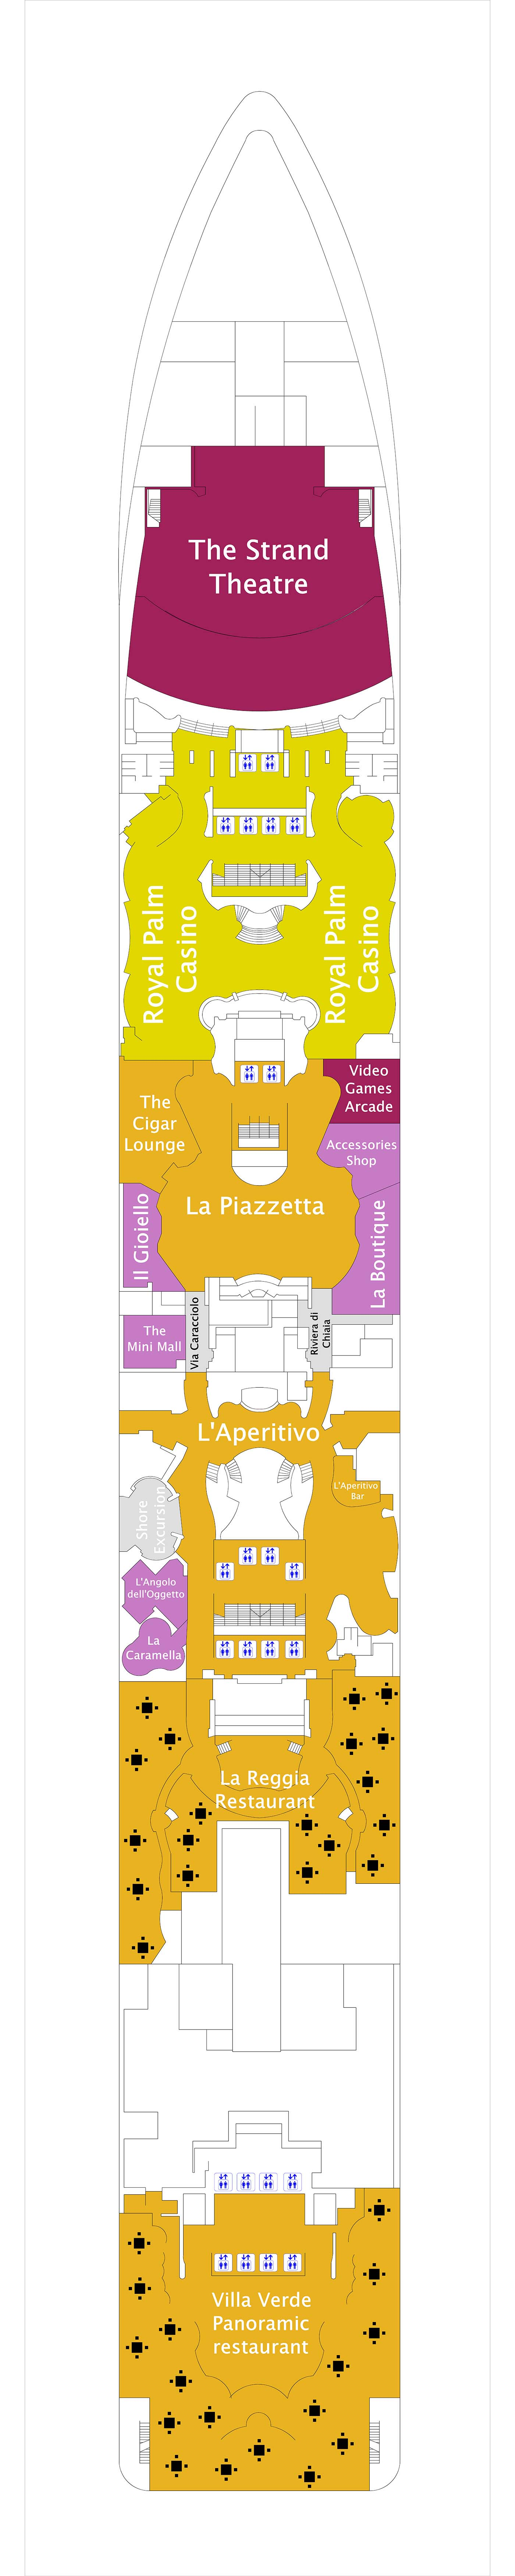 MSC Splendida deck plan 6